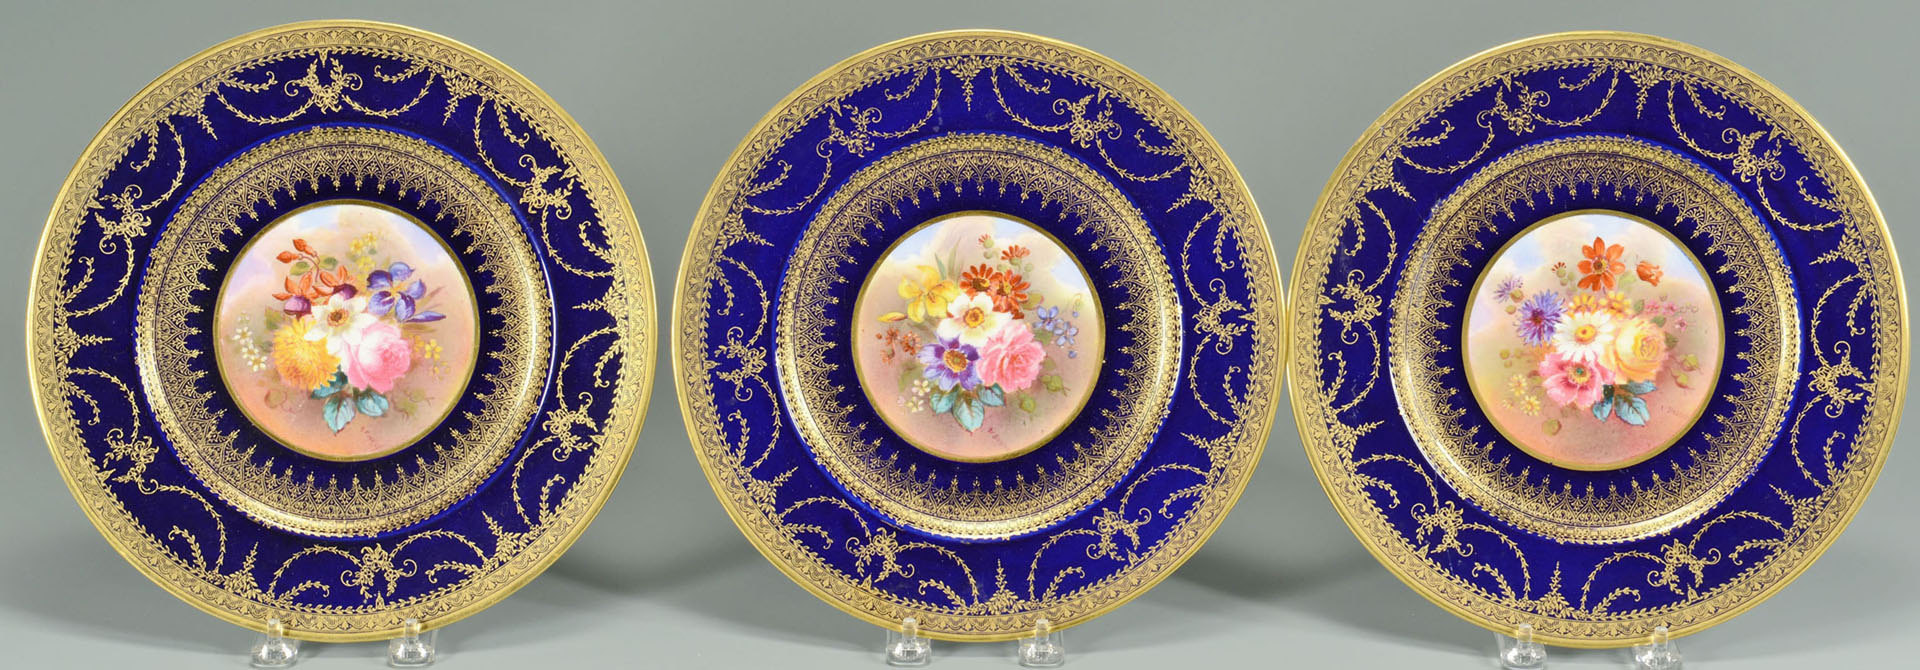 Lot 569: 12 George Jones Crescent & Sons Service Plates, co